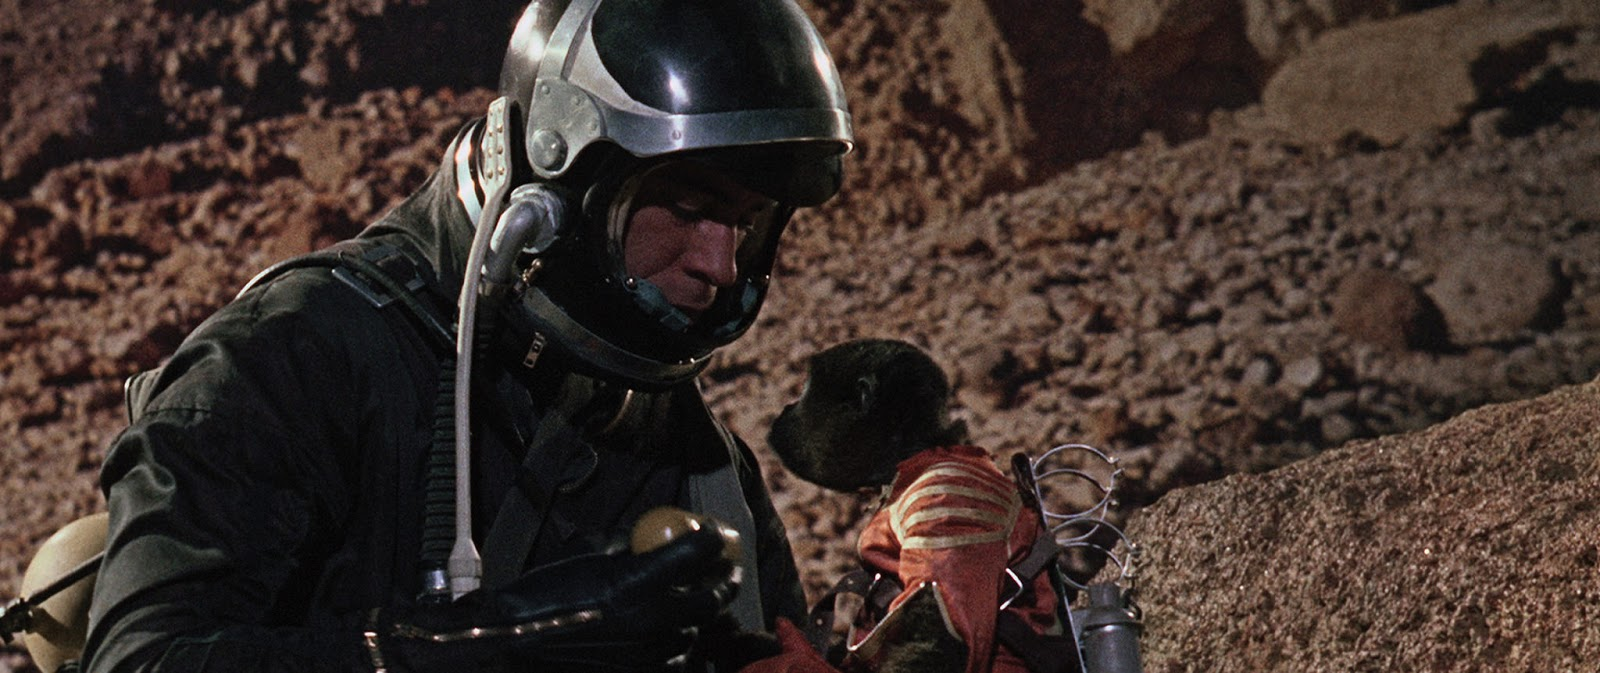 Paul Mantee and The Woolly Monkey in Robinson Crusoe on Mars (1964)